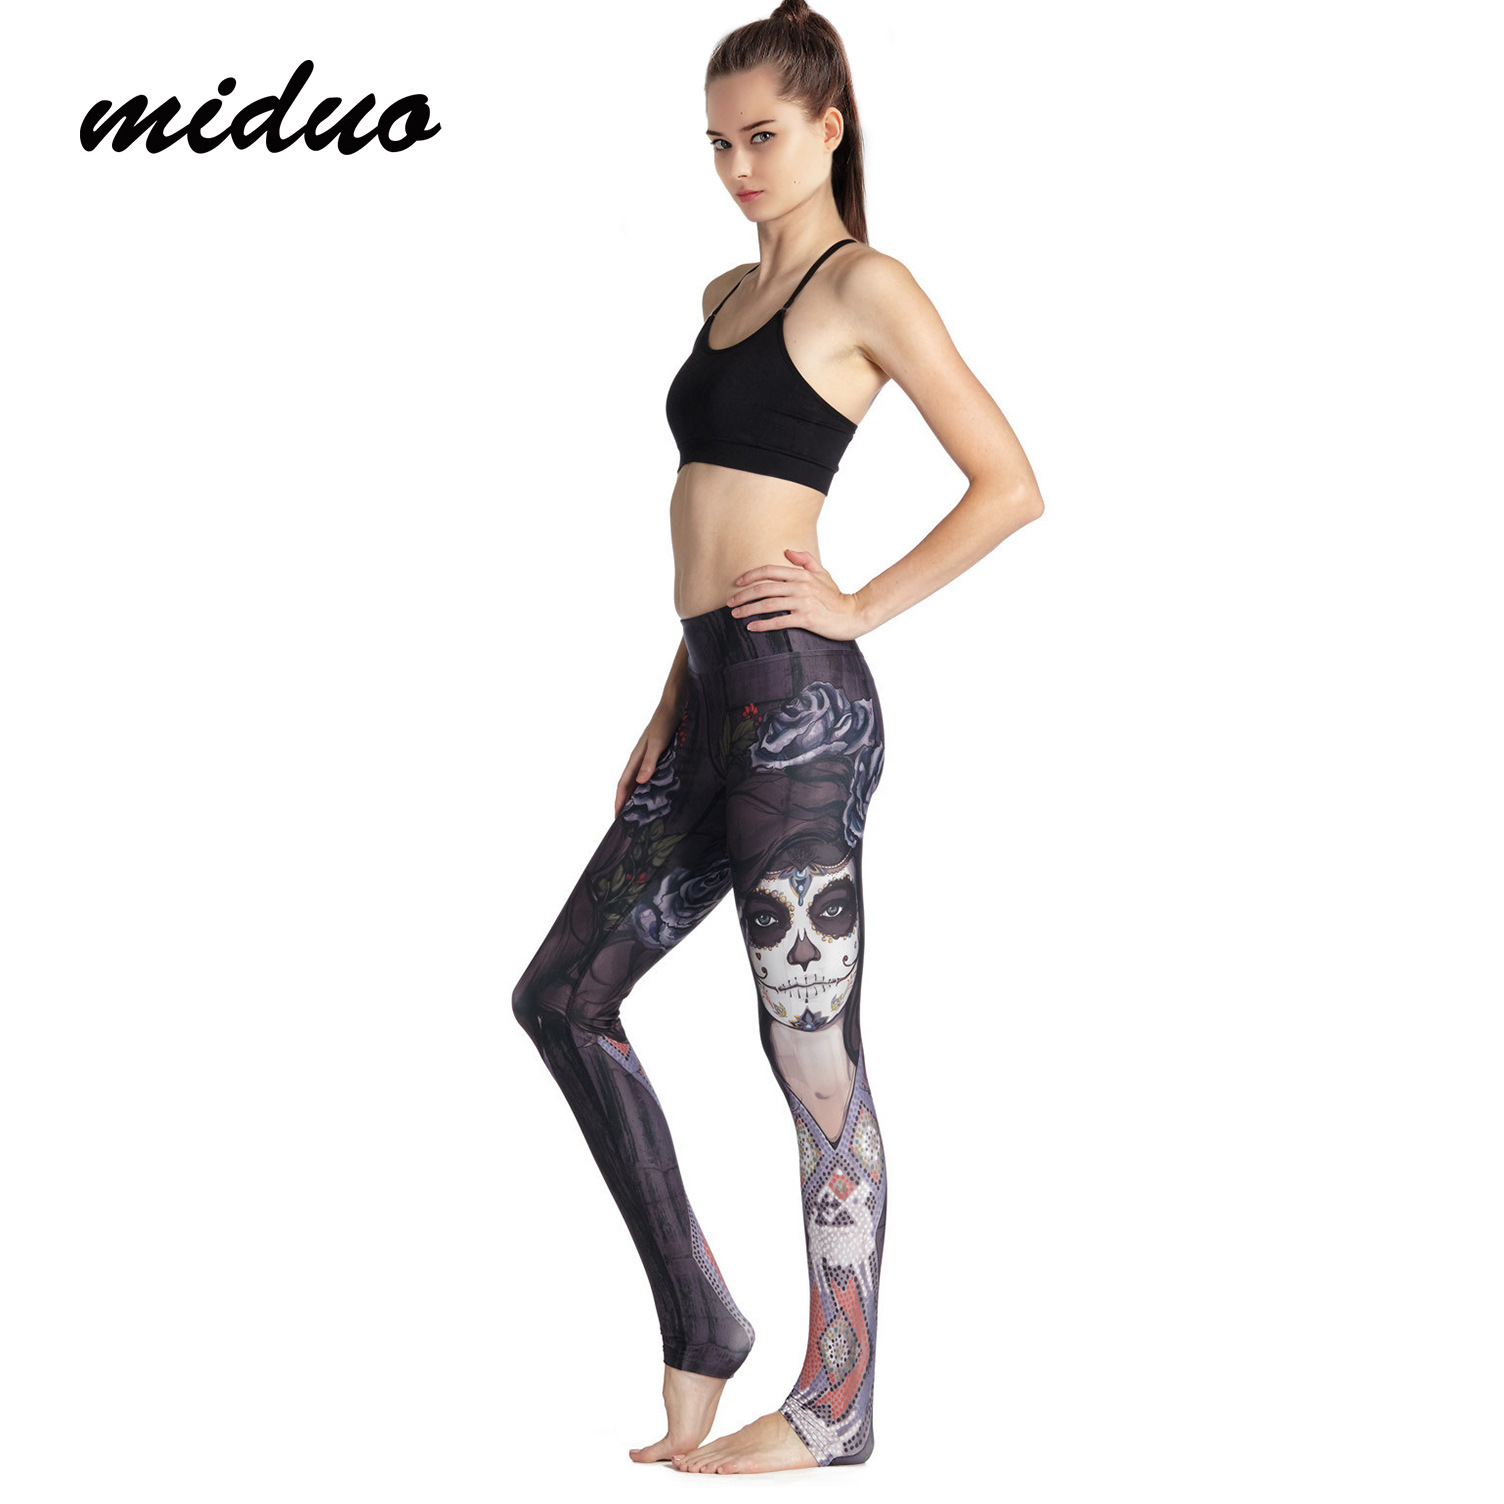 424cd2f641503 Women's Sportswear Gym Elasticity Printed Witch Yoga Pants Black Rose  Running Sports Tights Flower Sorceress Fitness Leggings